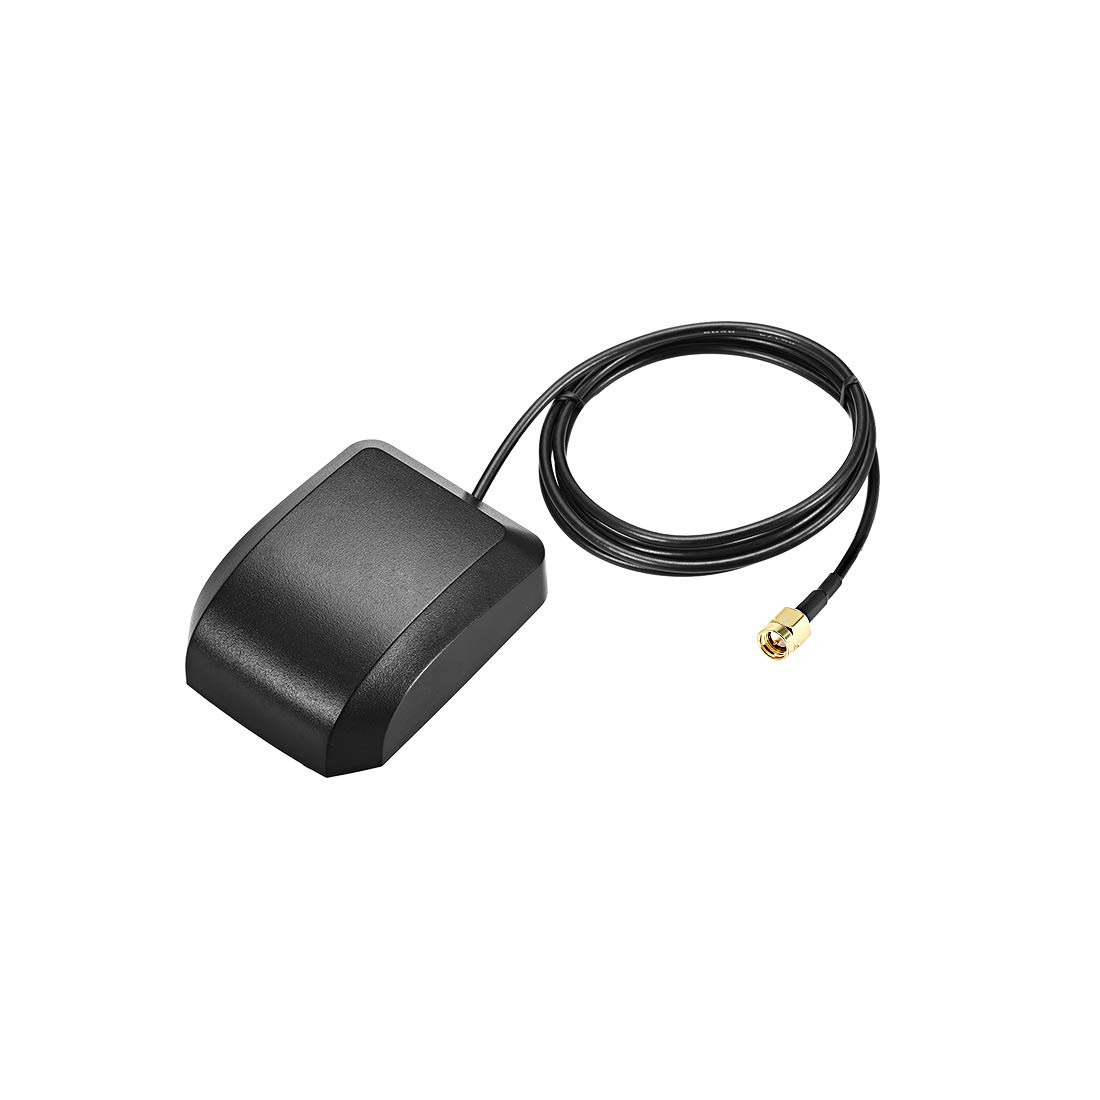 uxcell GPS Active Antenna Compatible with Beidou SMA Male Plug 34dB Aerial Connector Cable with Magnetic Mount 1 Meters Wire